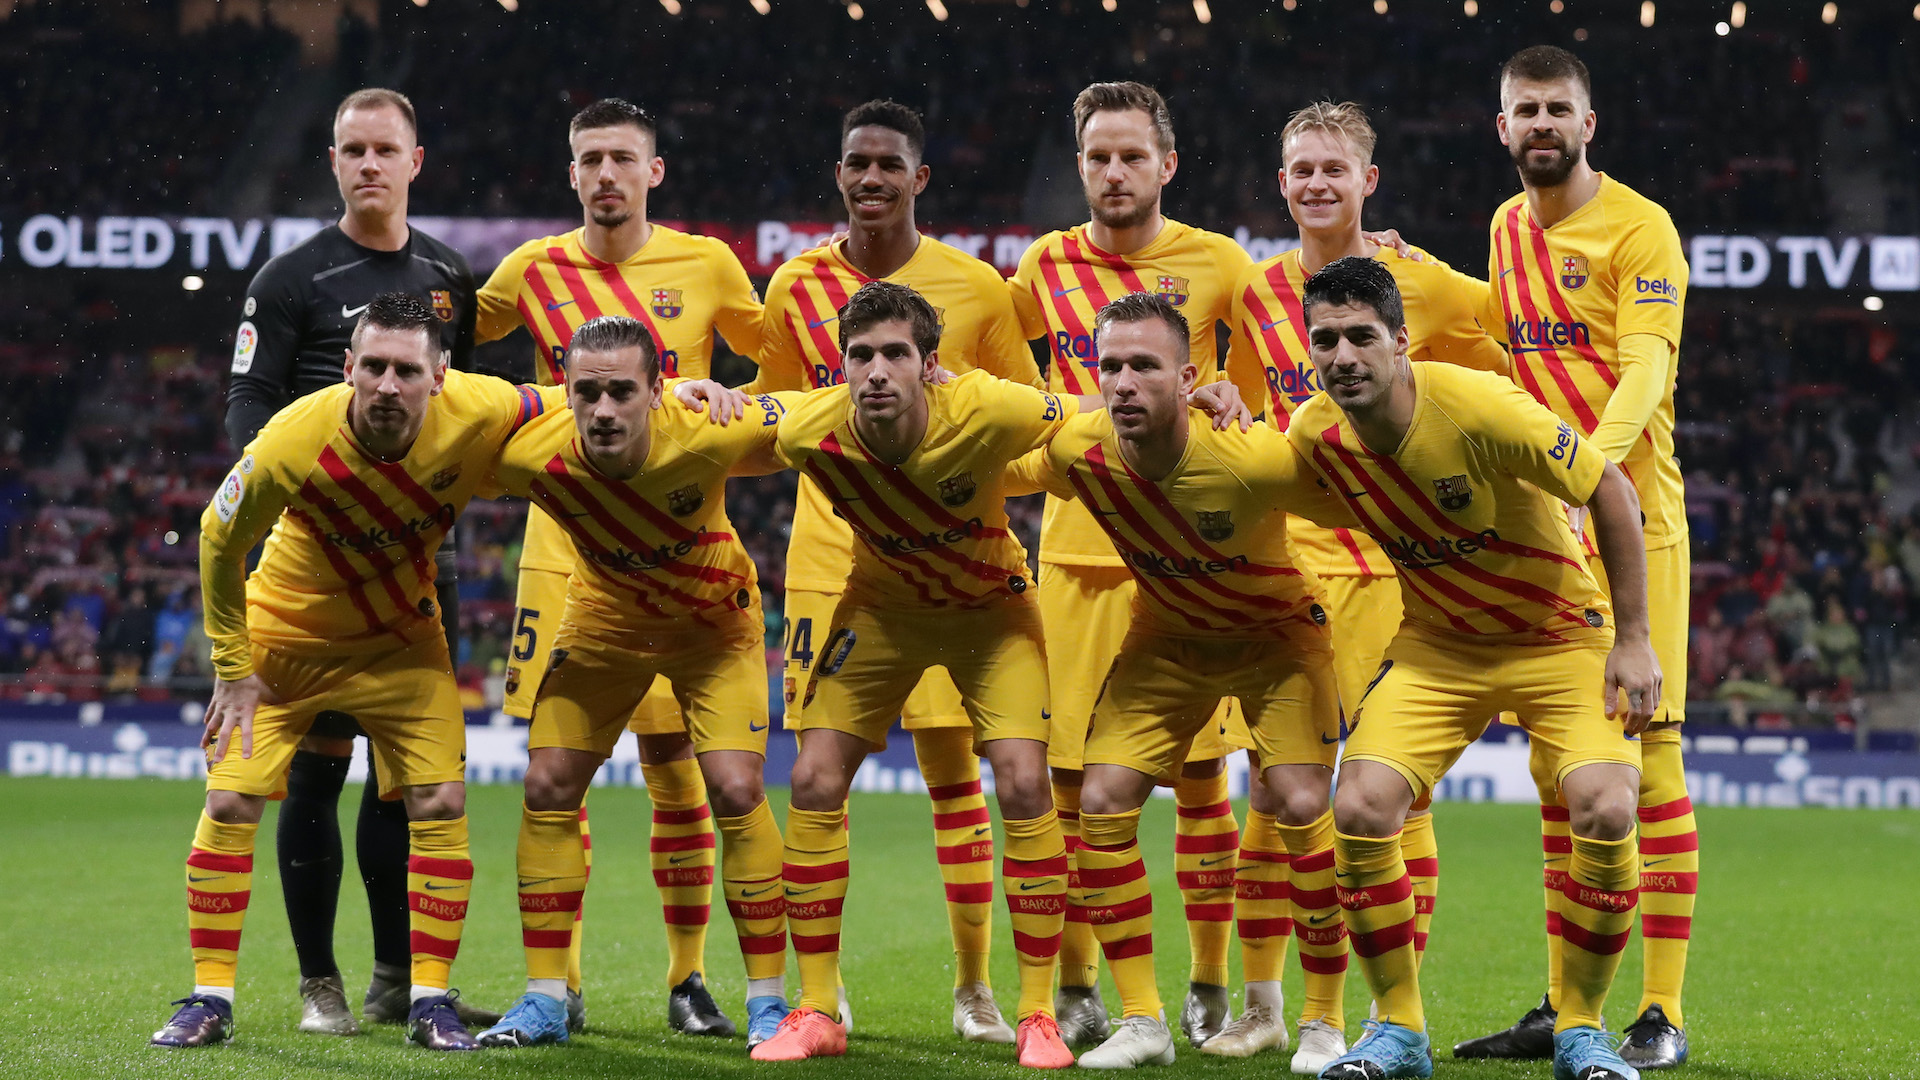 https://images.daznservices.com/di/library/GOAL/e9/f4/atletico-madrid-barcelona-laliga_qf5n0ctkel8d17vzy63yxb38q.jpg?t=-950559458&quality=100